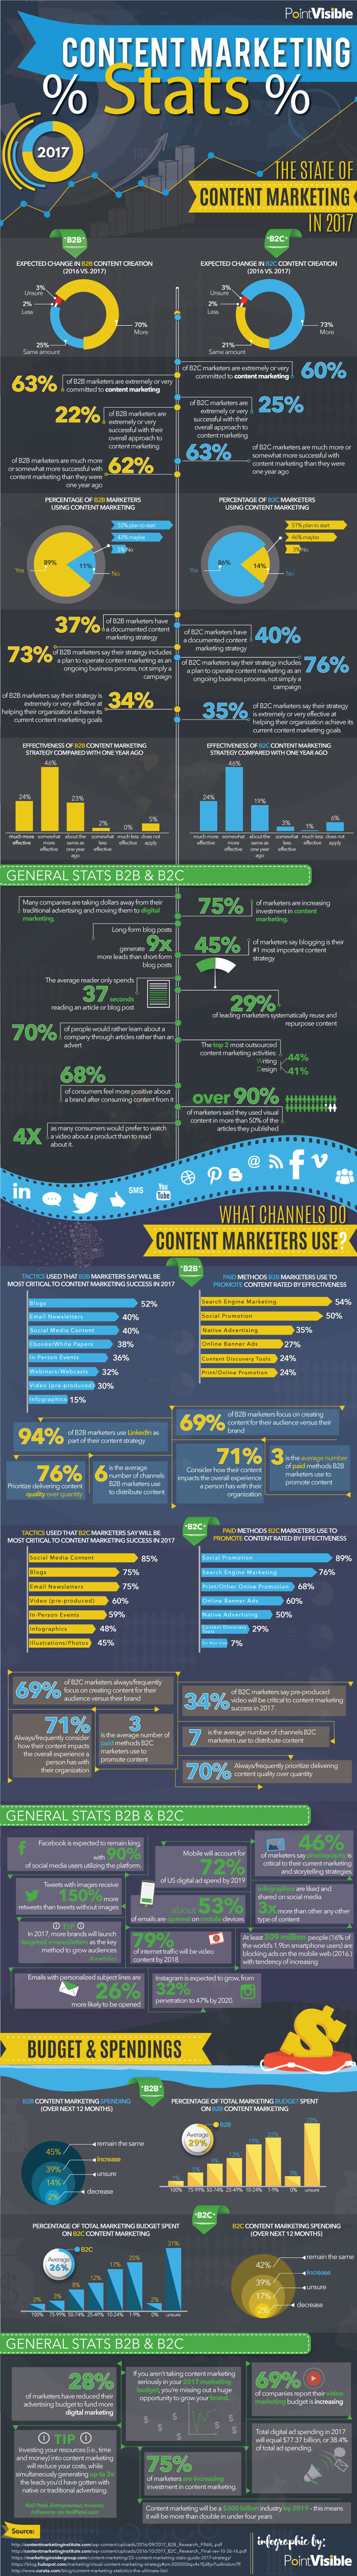 170523 infographic content marketing statistics and trends full 1